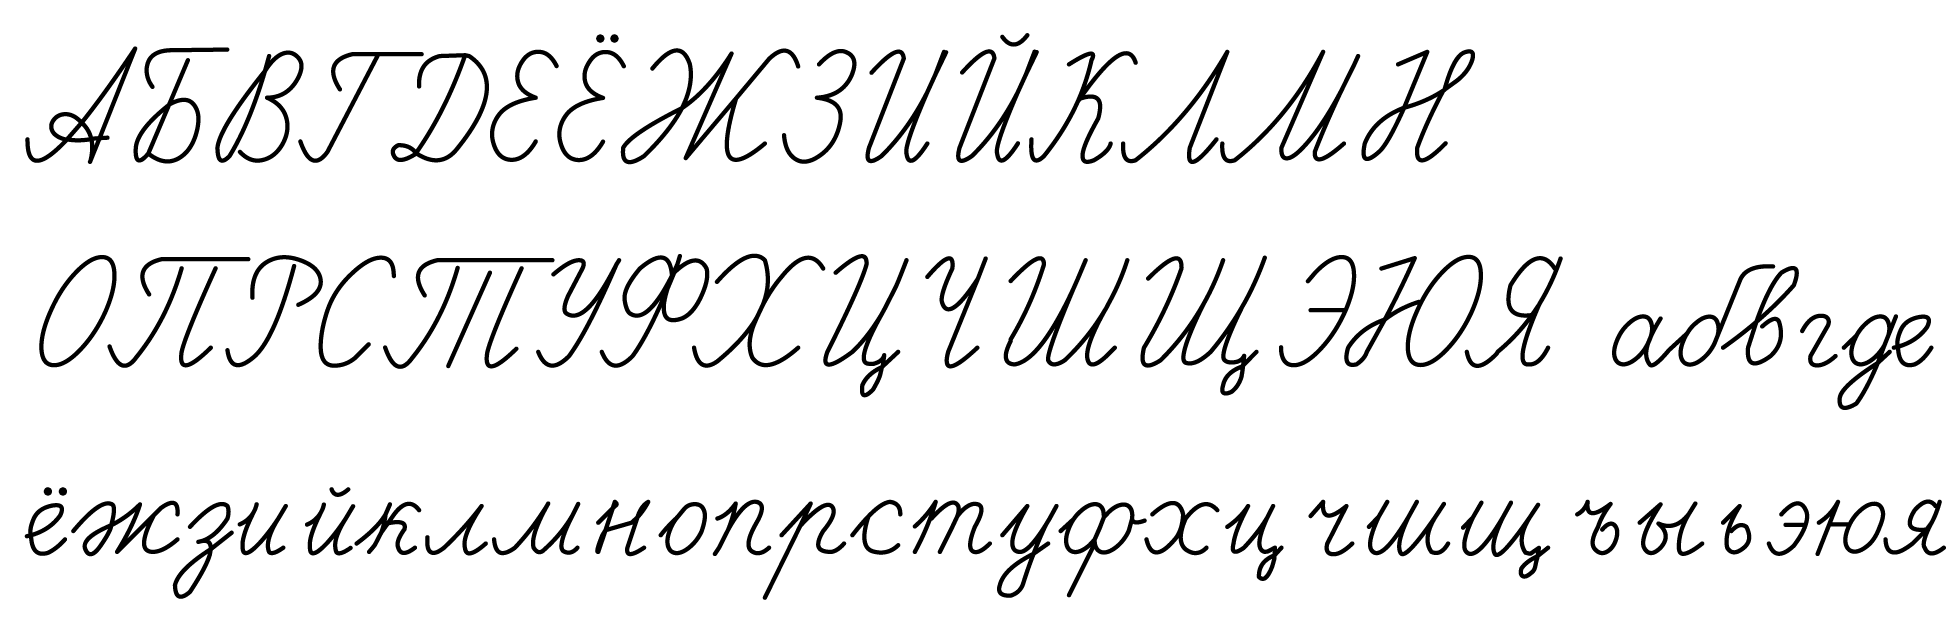 Russian Cursive Writing